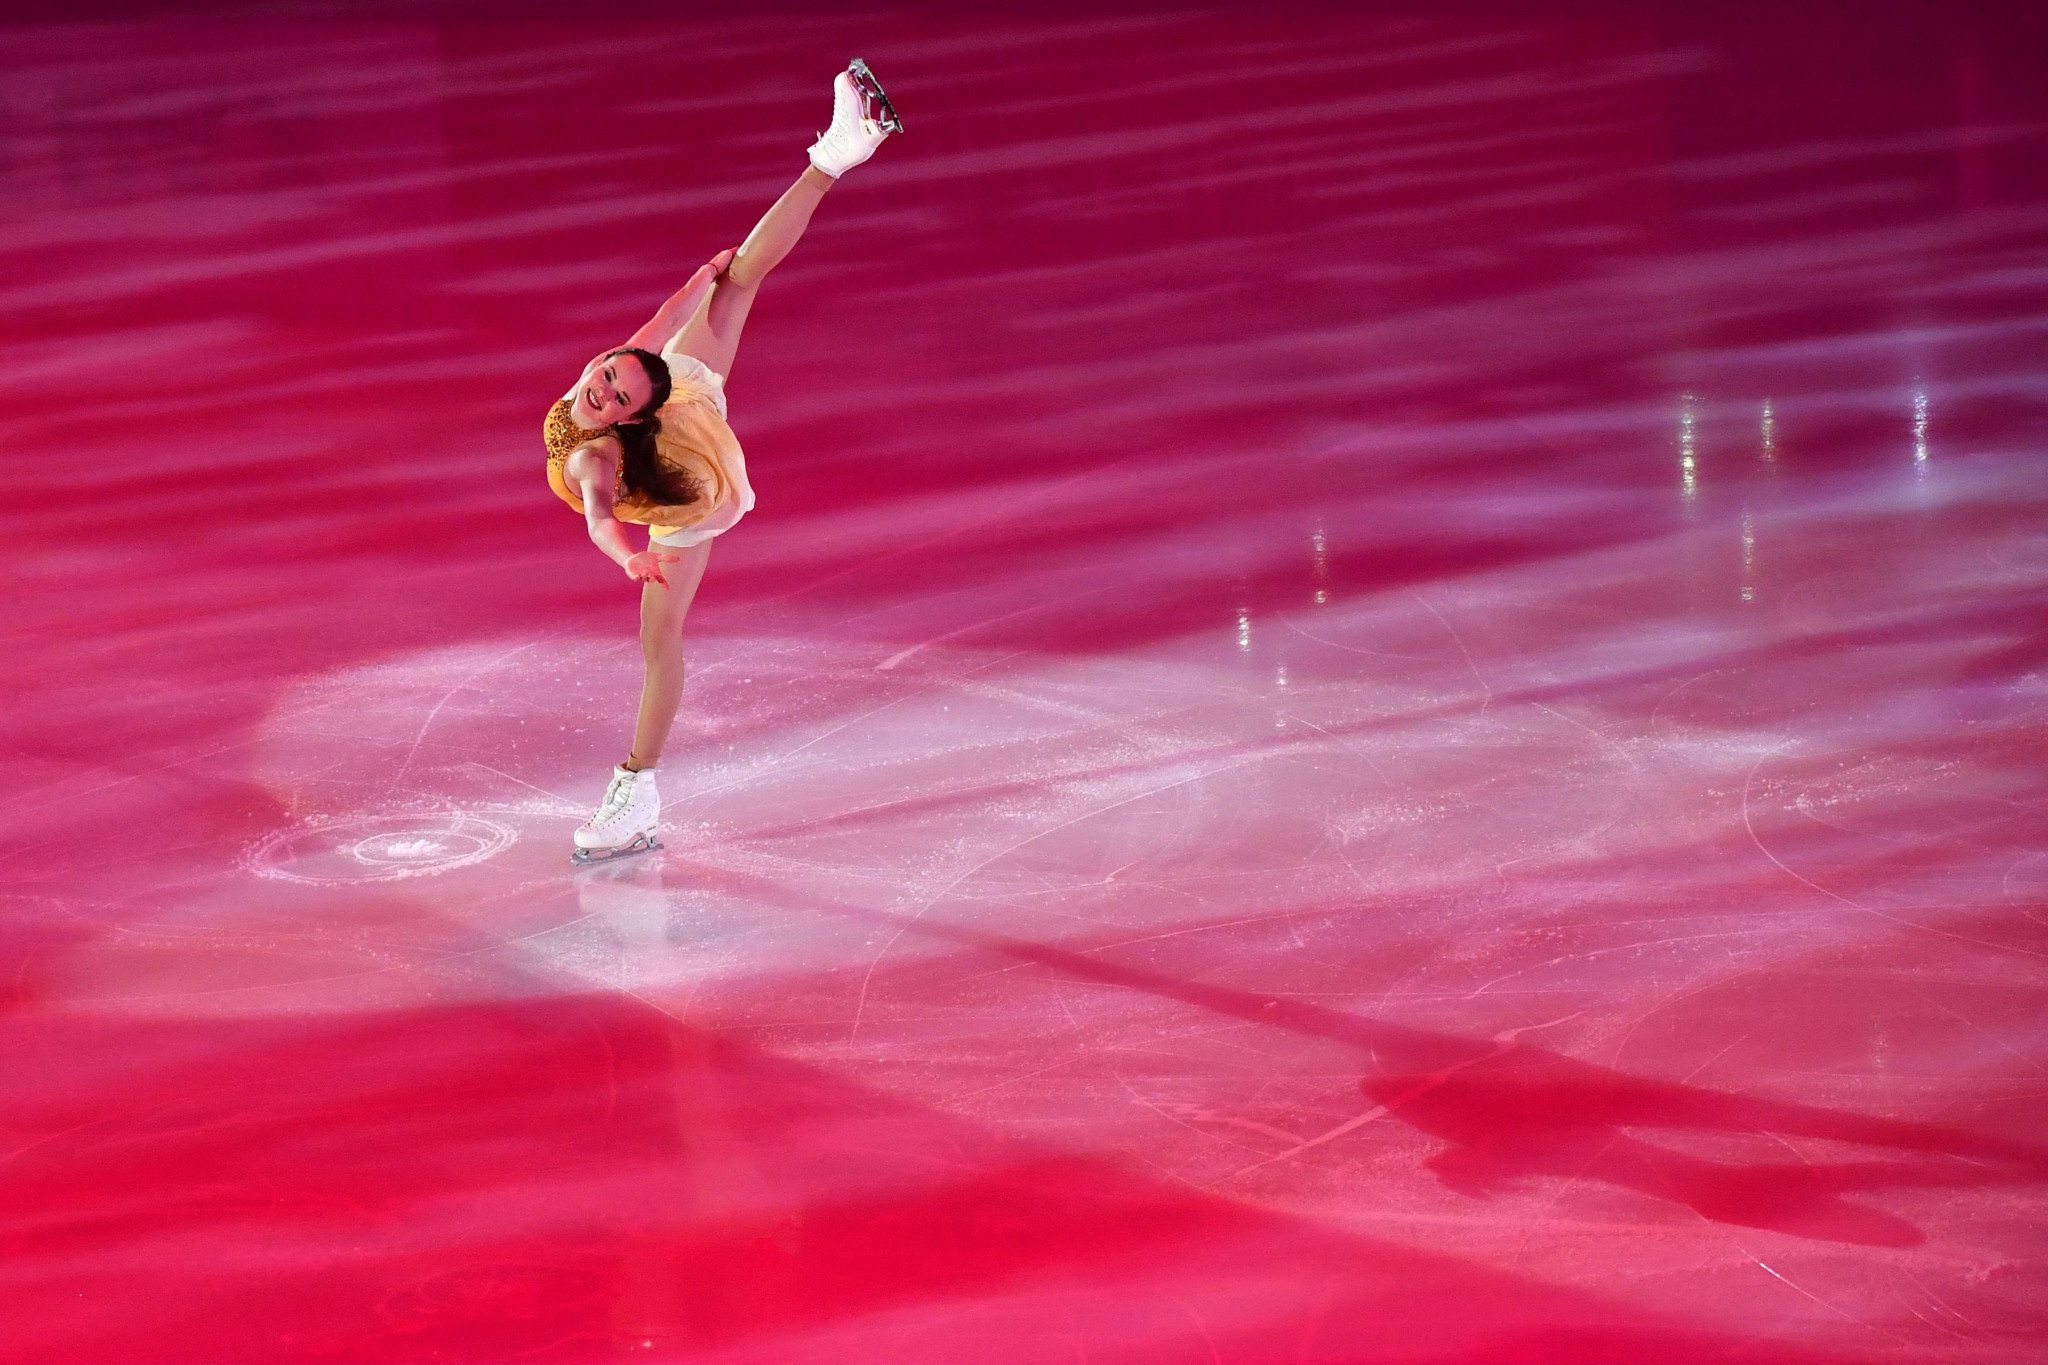 ISU Grand Prix of Figure Skating events in Russia and France in doubt due to COVID-19